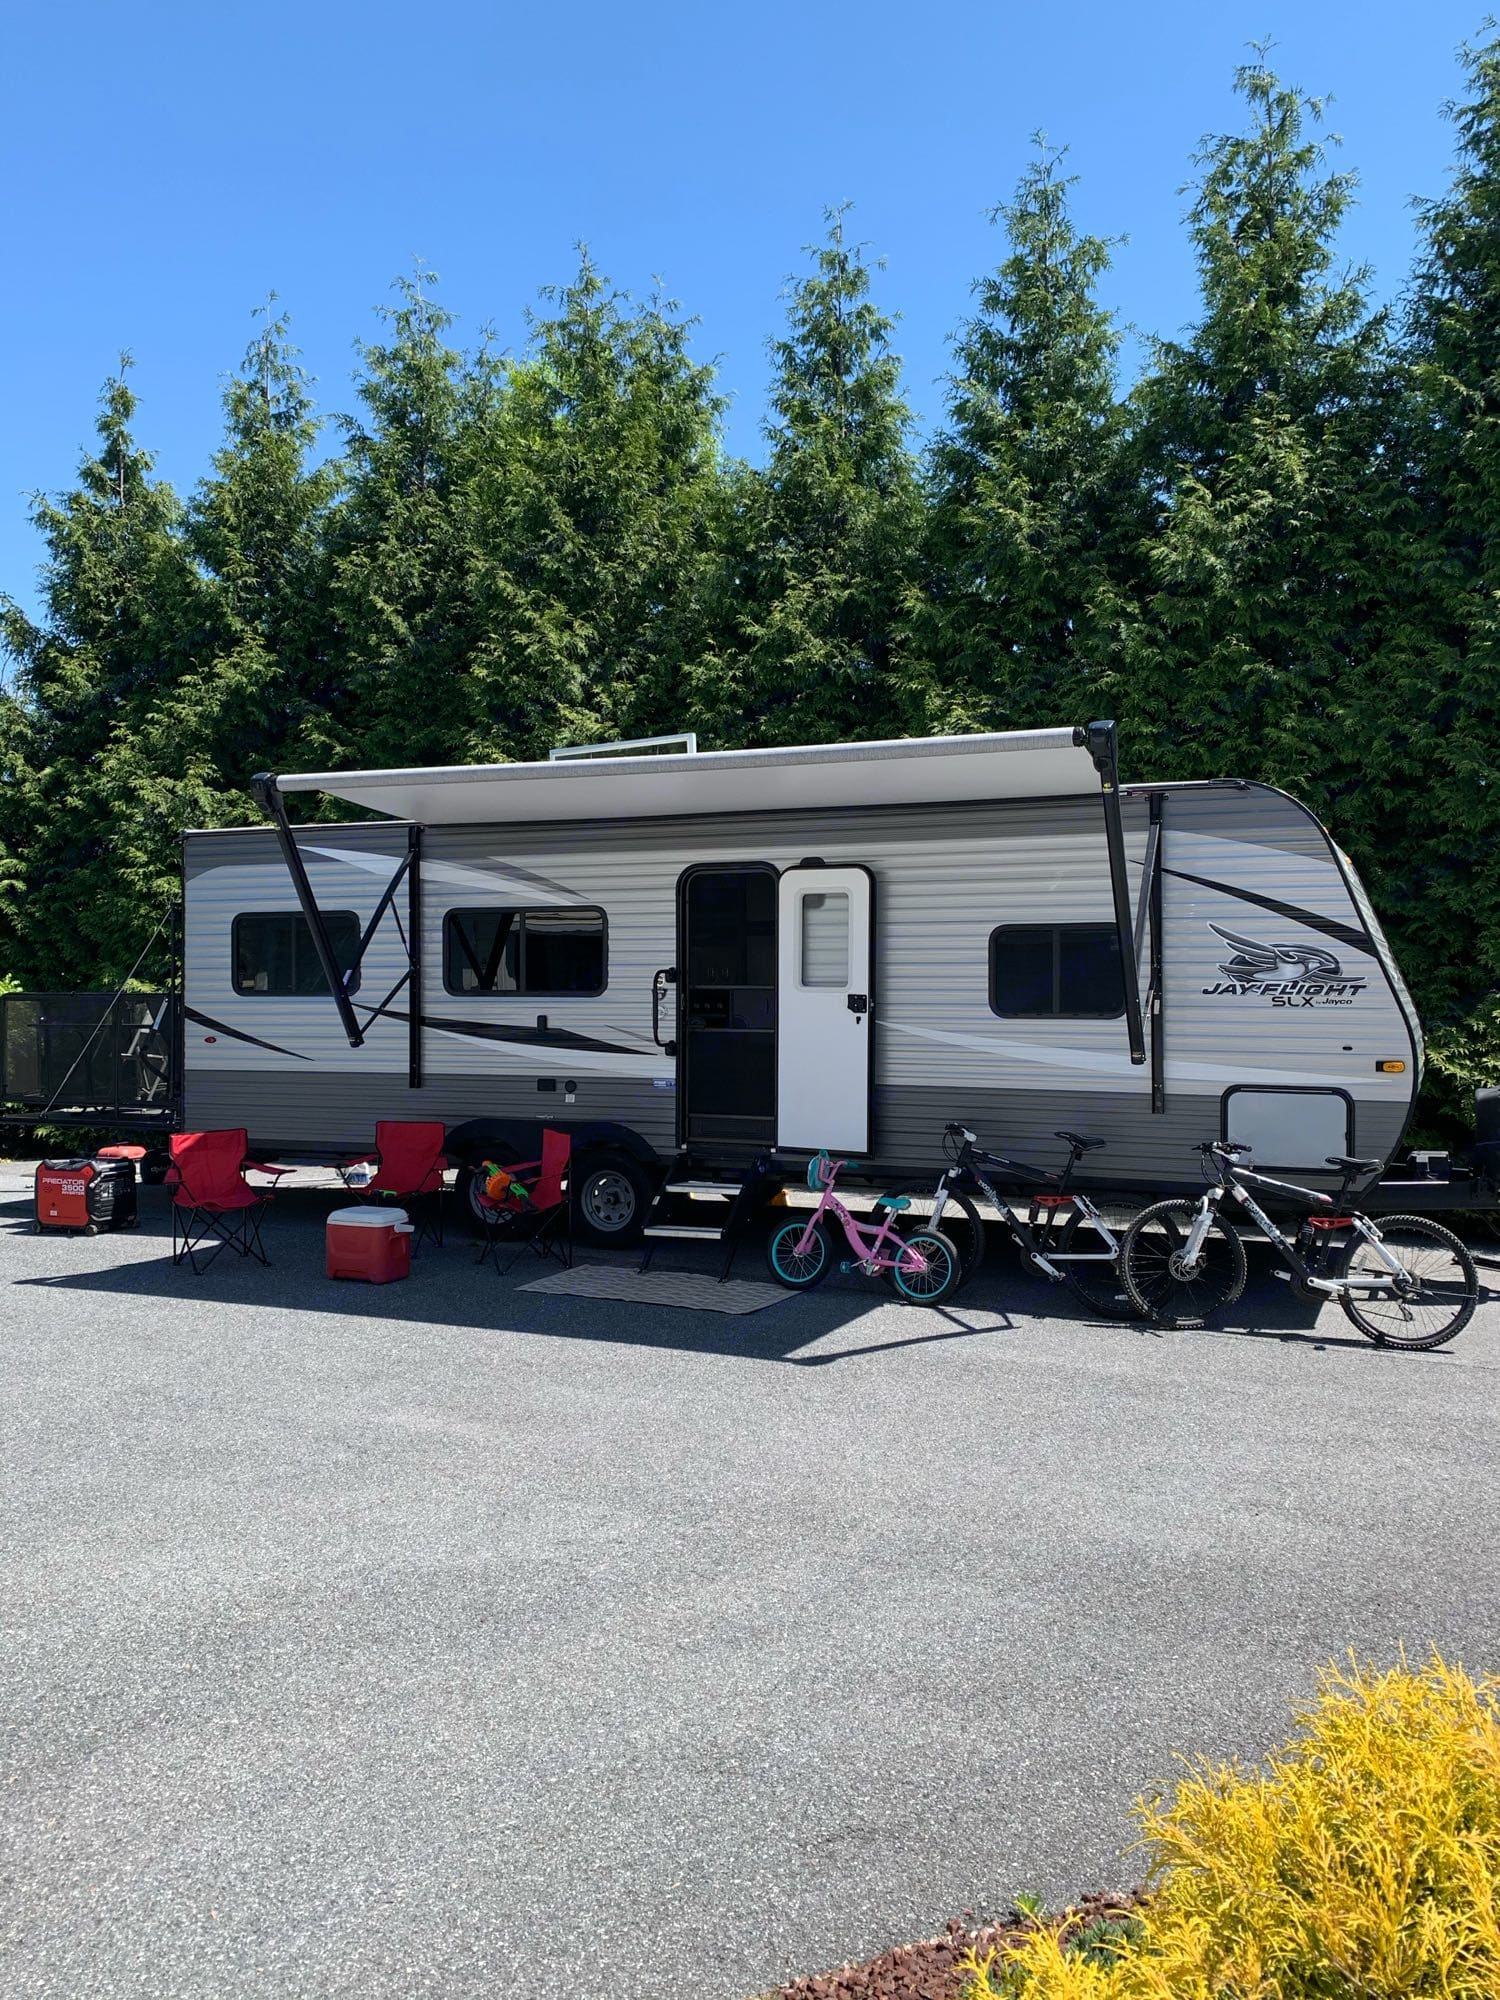 Exterior with awning extended. Jayco Jay Flight 2021